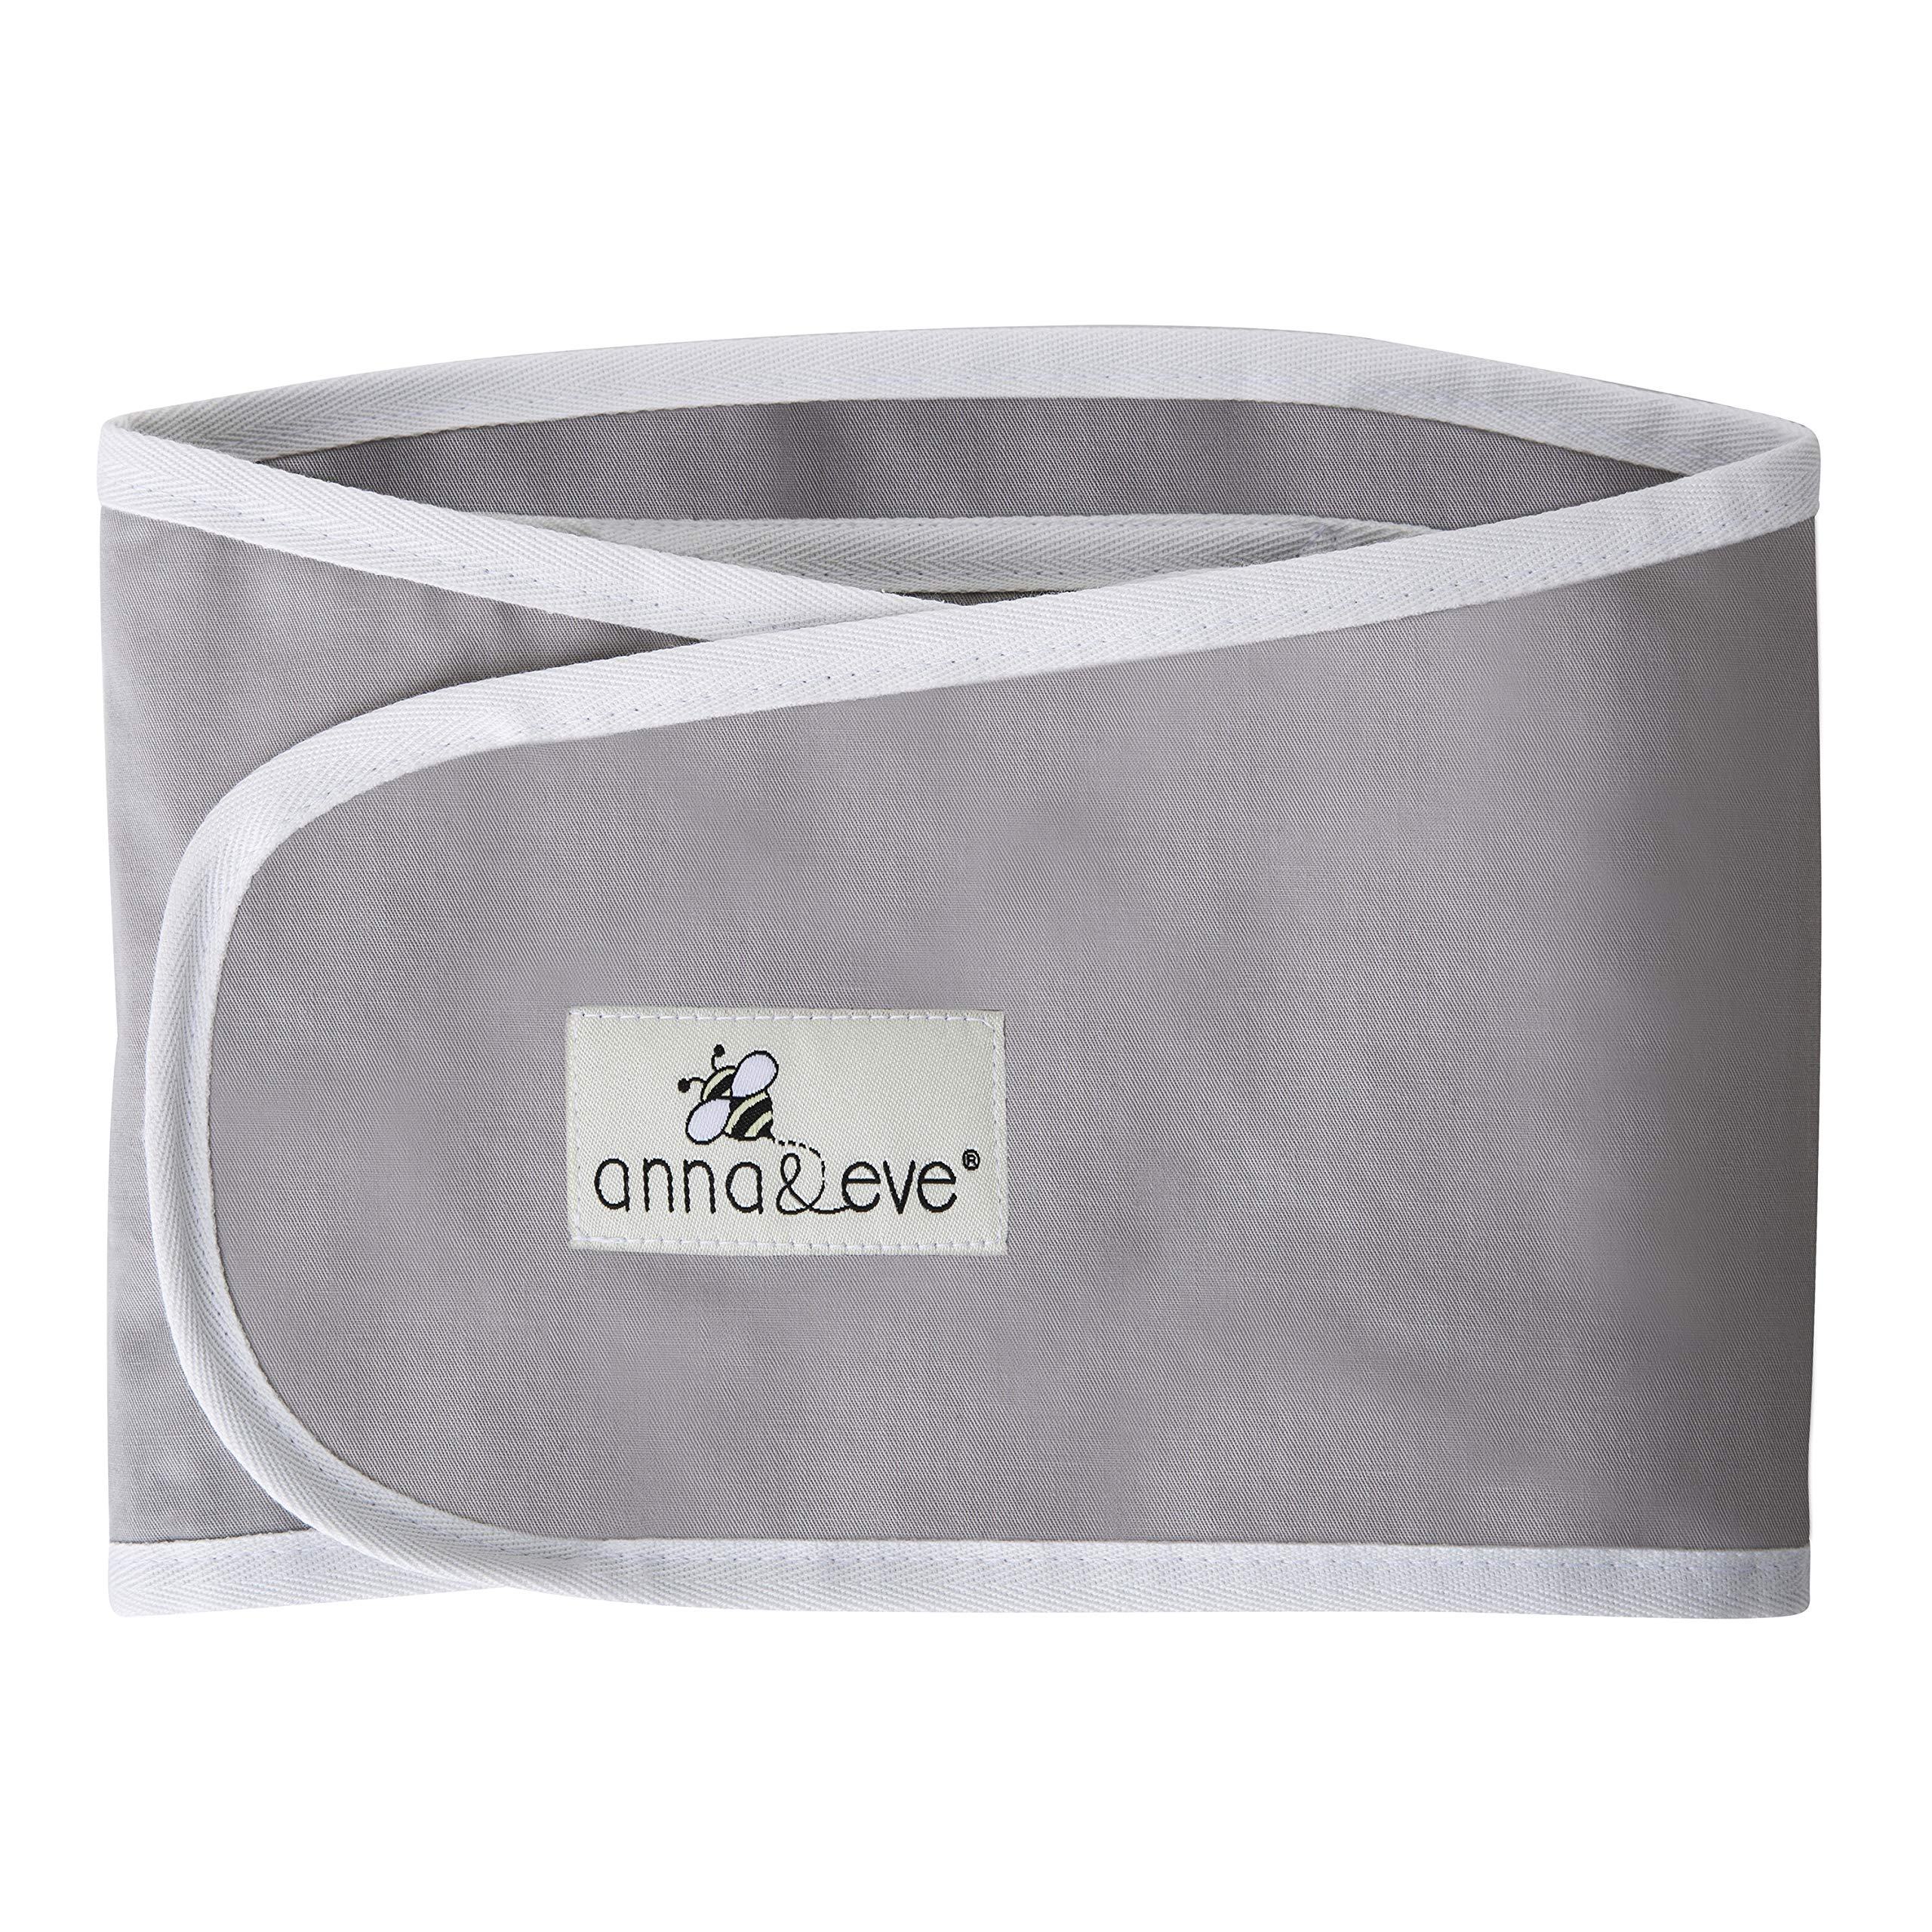 Anna & Eve - Baby Swaddle Strap, Adjustable Arms Only Wrap for Safe Sleeping - Grey, Large by Anna & Eve